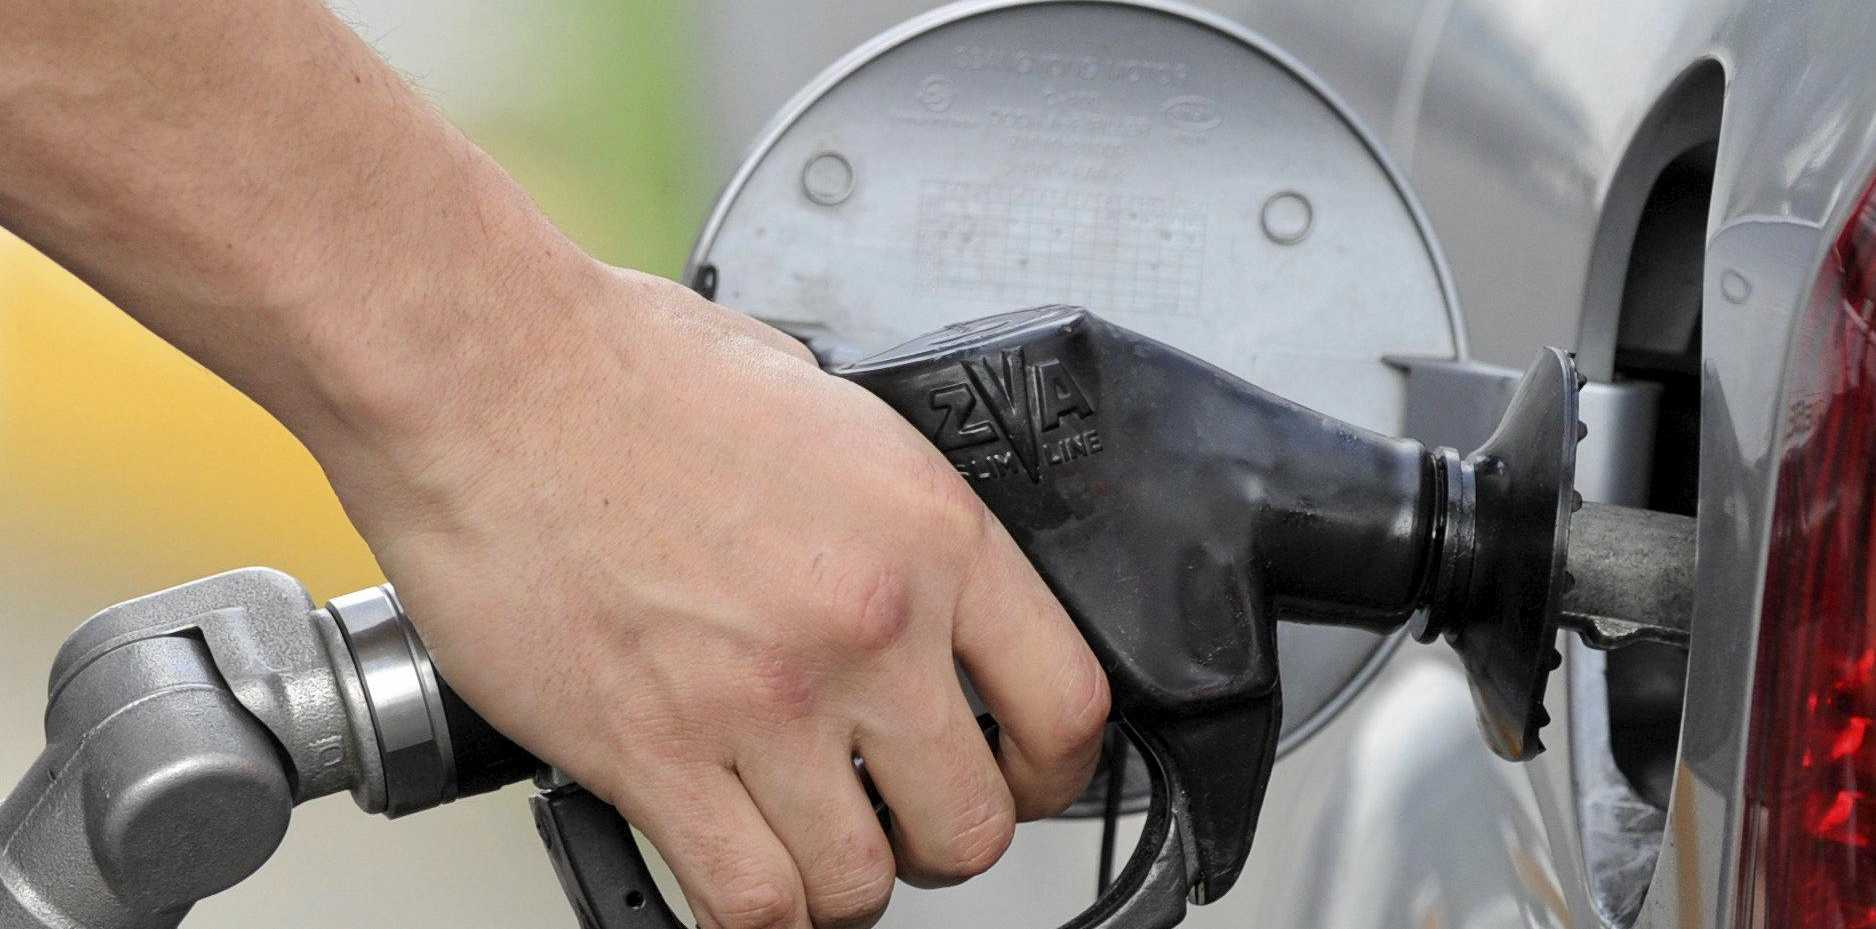 A man pumps petrol at a service station in Melbourne, Monday, Aug. 27, 2012. (AAP Image/Julian Smith) NO ARCHIVING